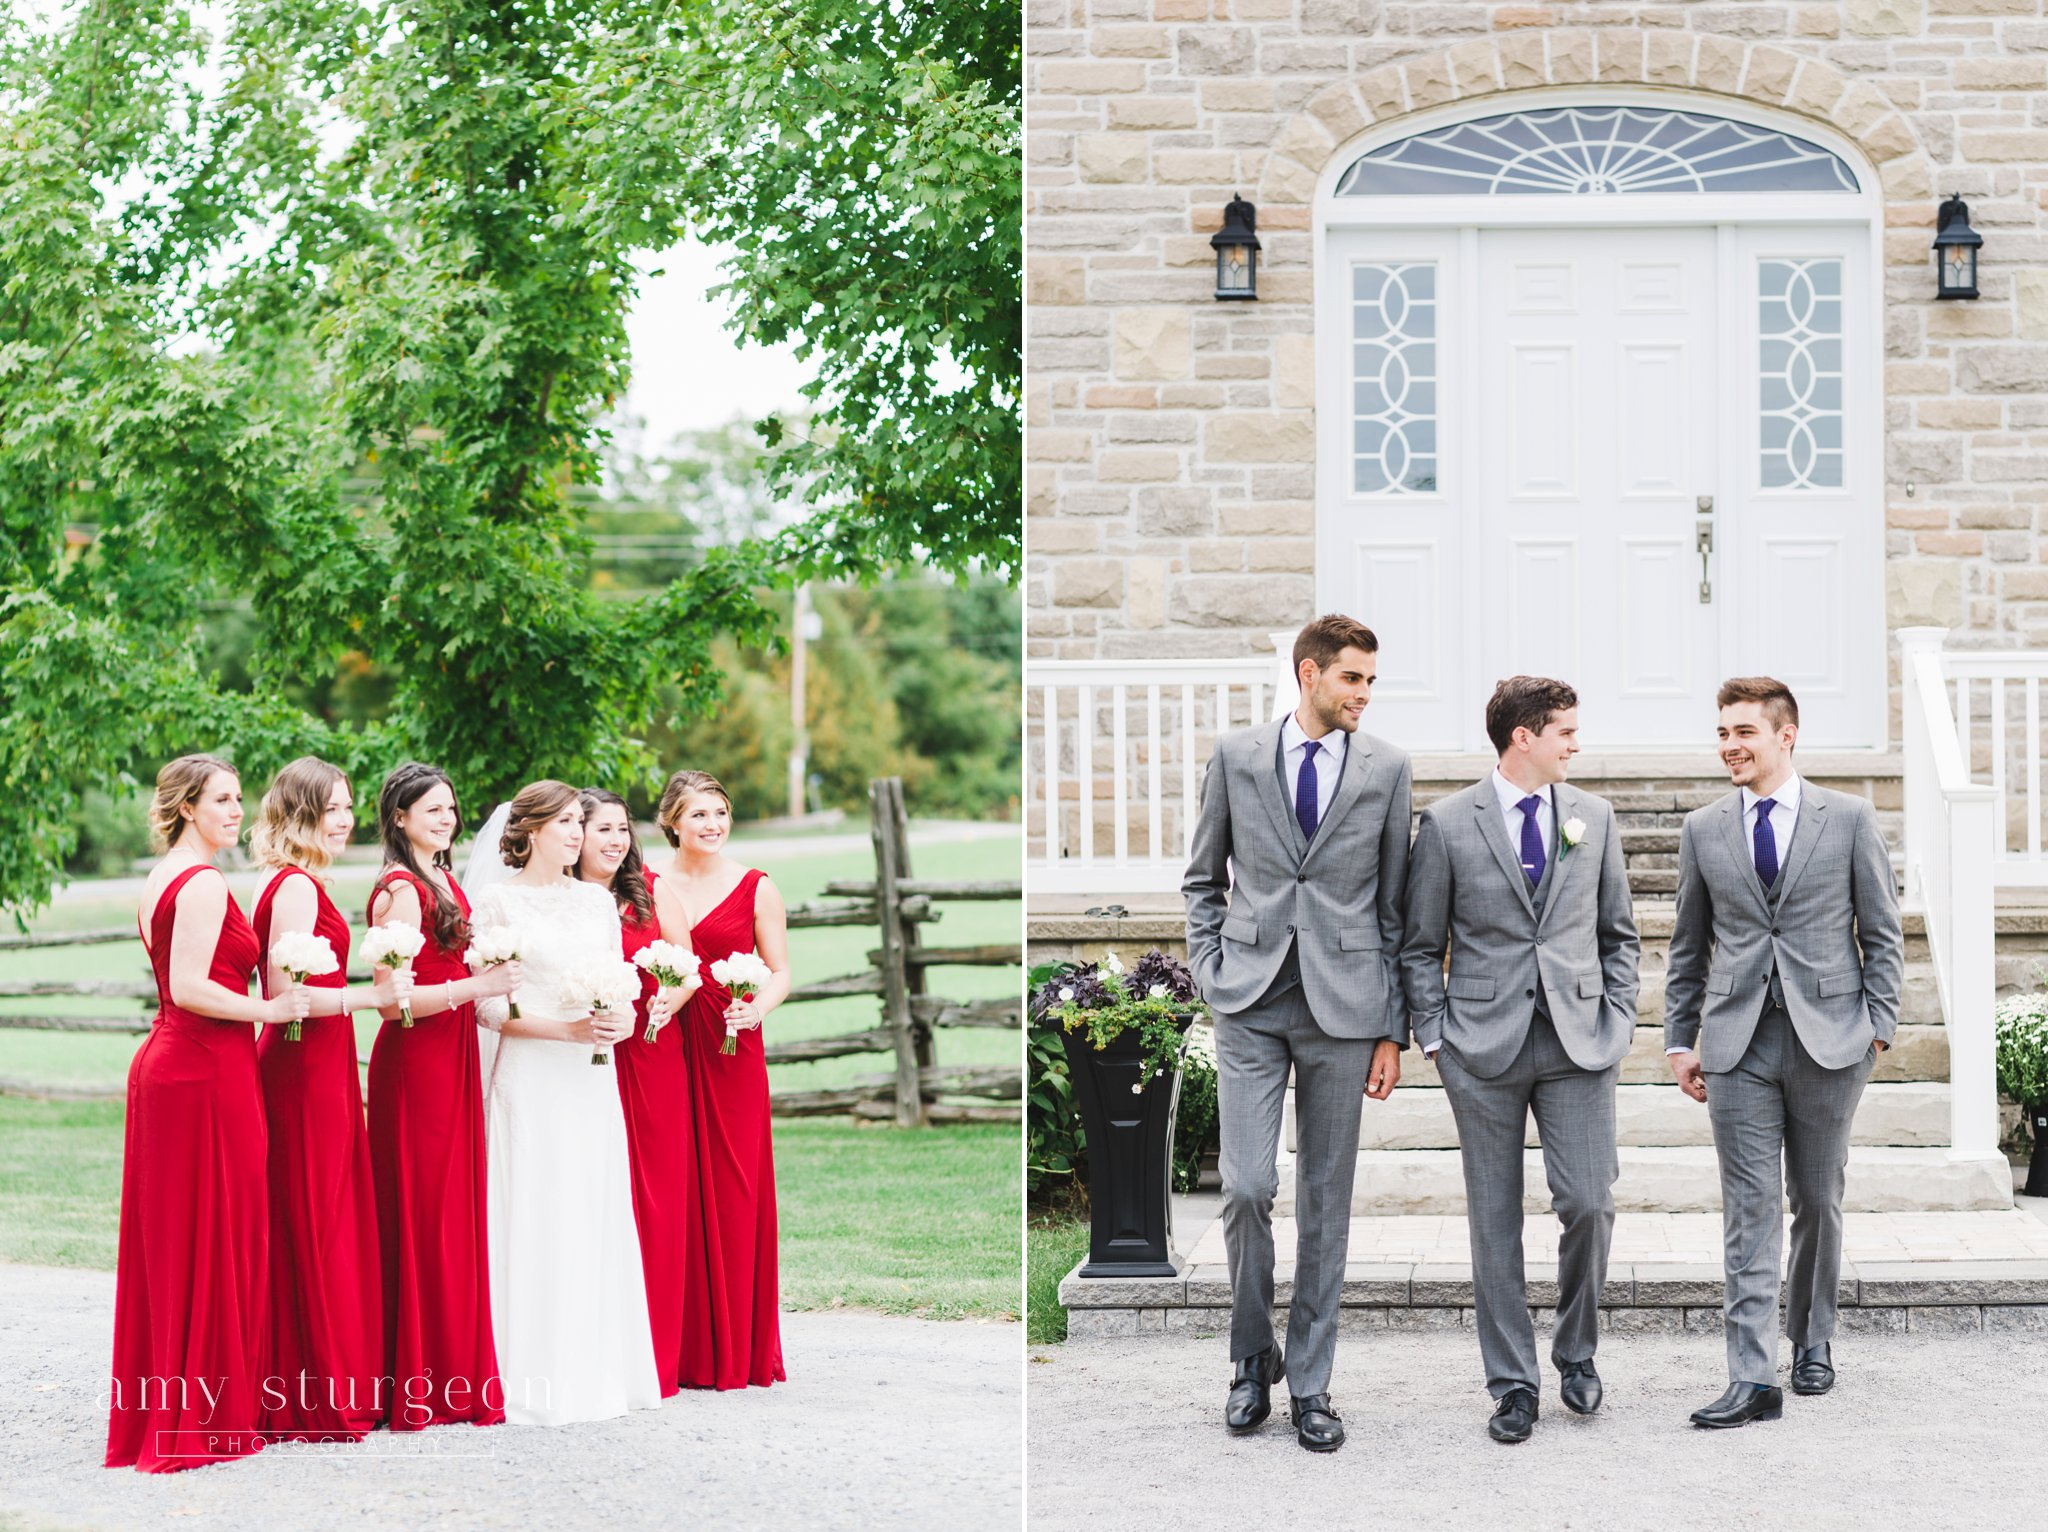 red bridesmaids dresses with white rose bouquets and groomsmen with grey suits at the alpaca farm wedding